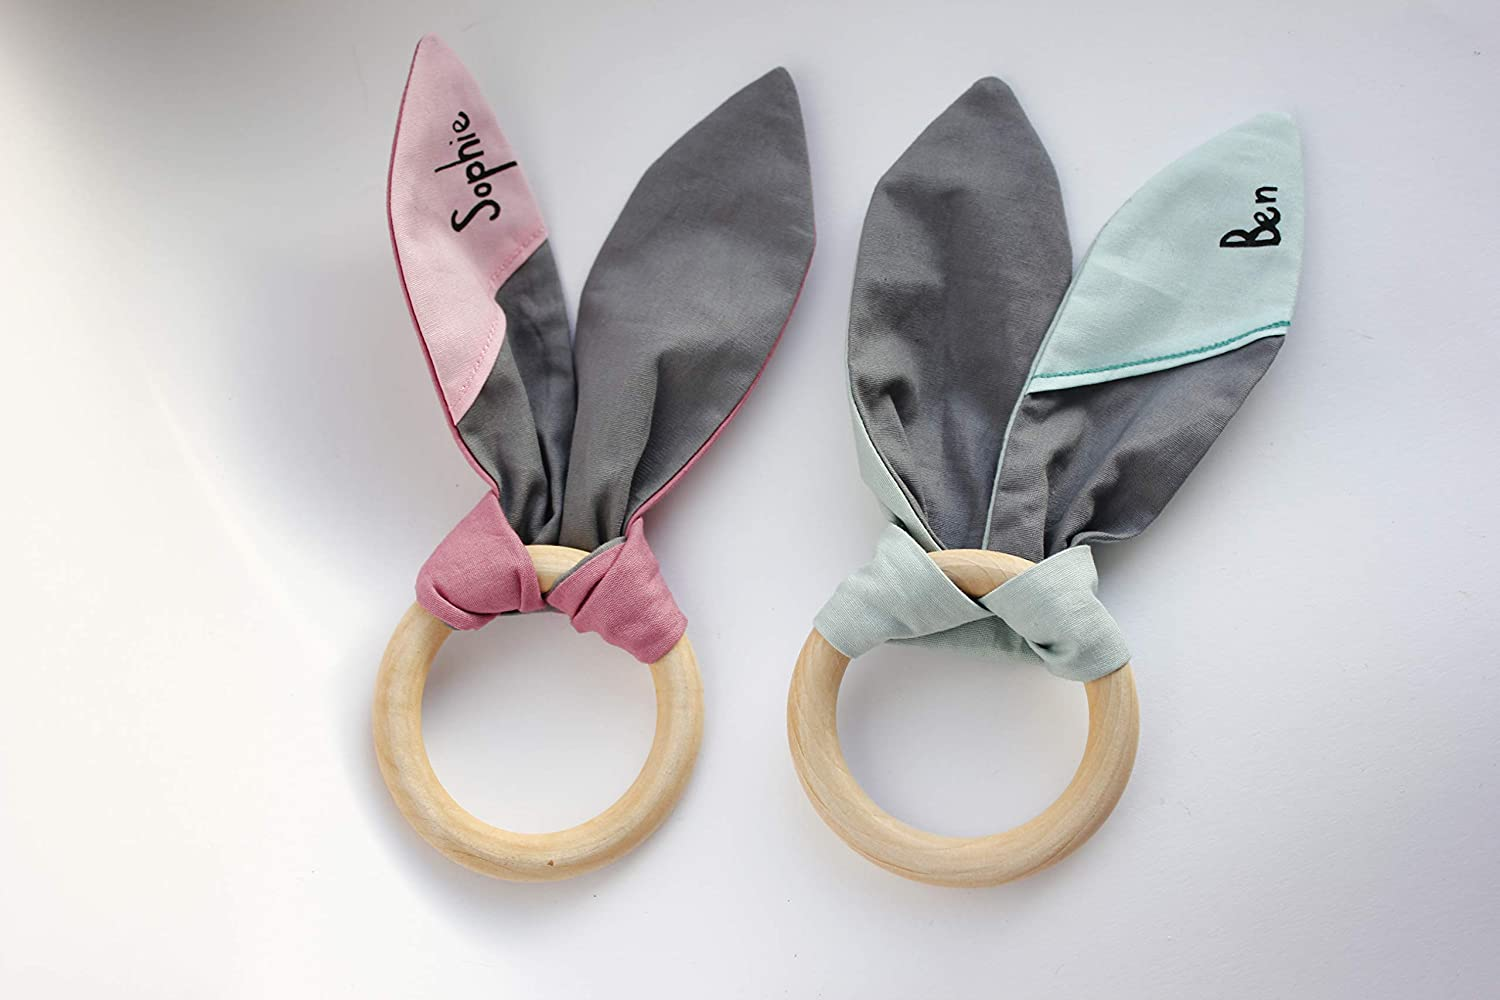 Rattle / Teething Bunny Ears, vegan, personalized, with name, wooden ring, pink, mint, german handcrafted